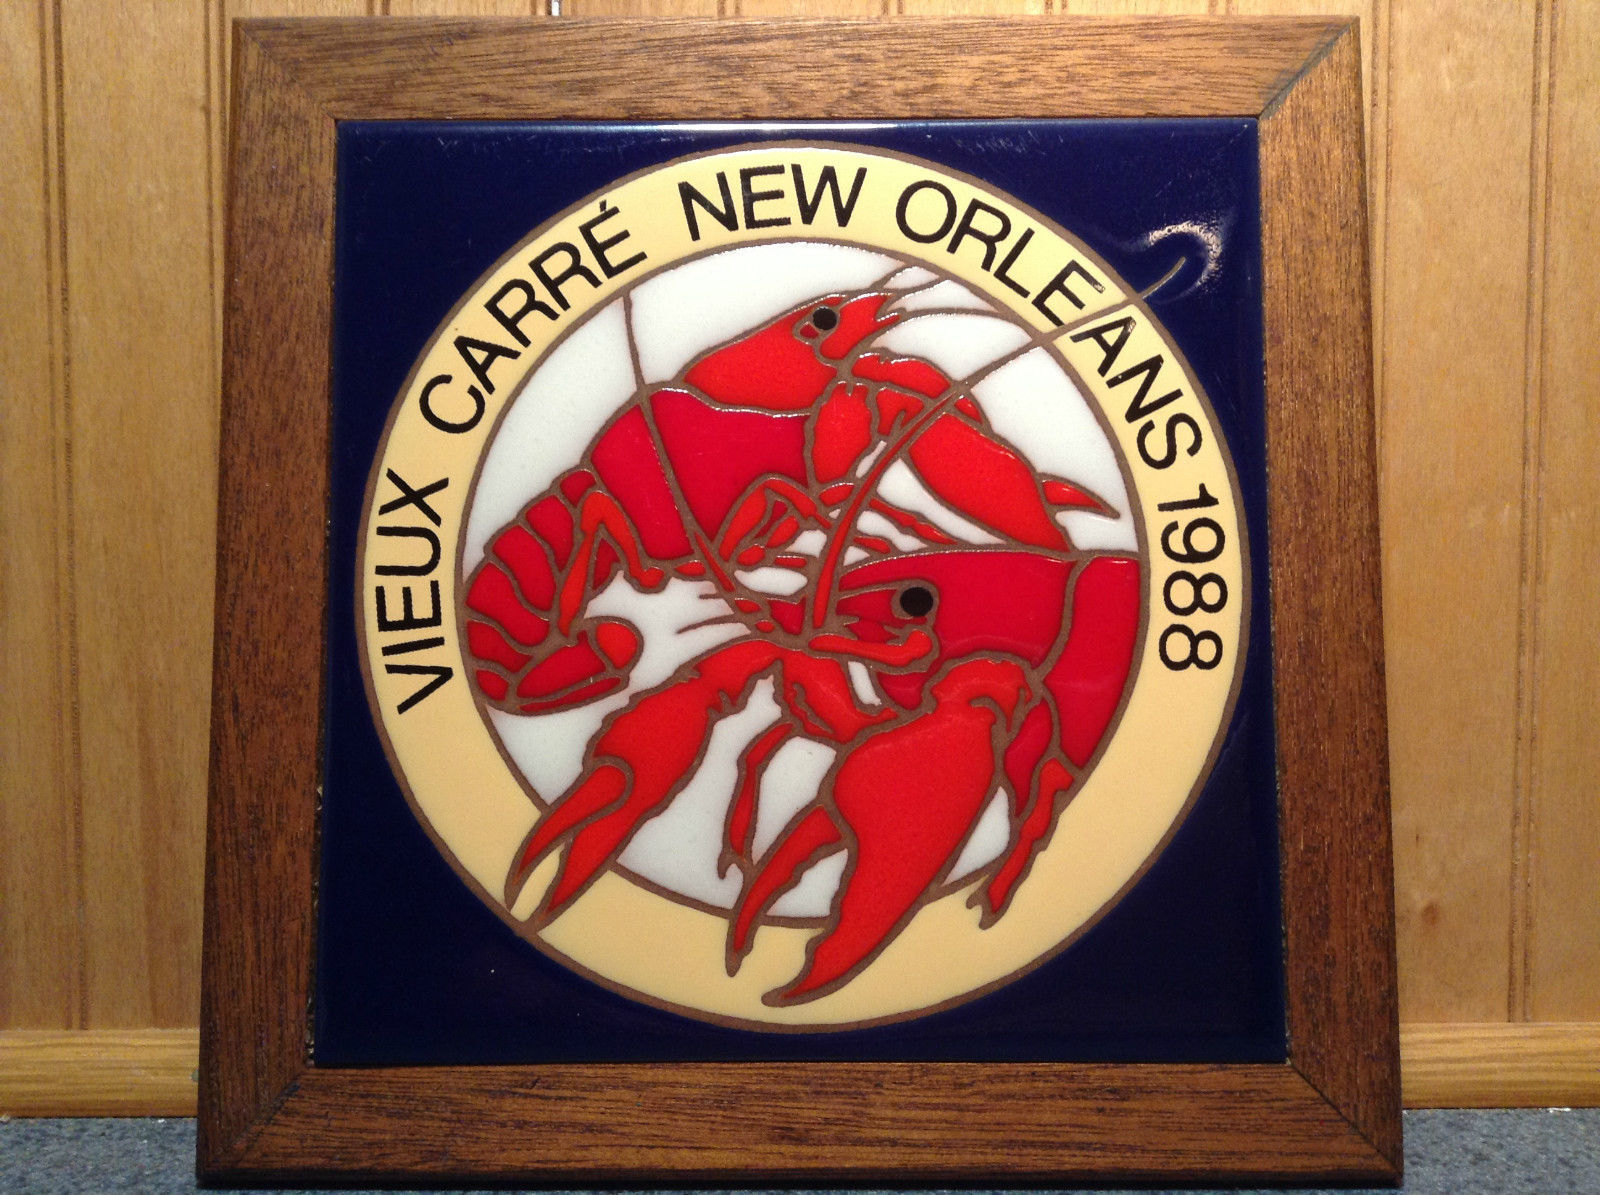 Vieux Carre New Orleans 1988 Vintage Tile Picture of Lobsters Made in Italy